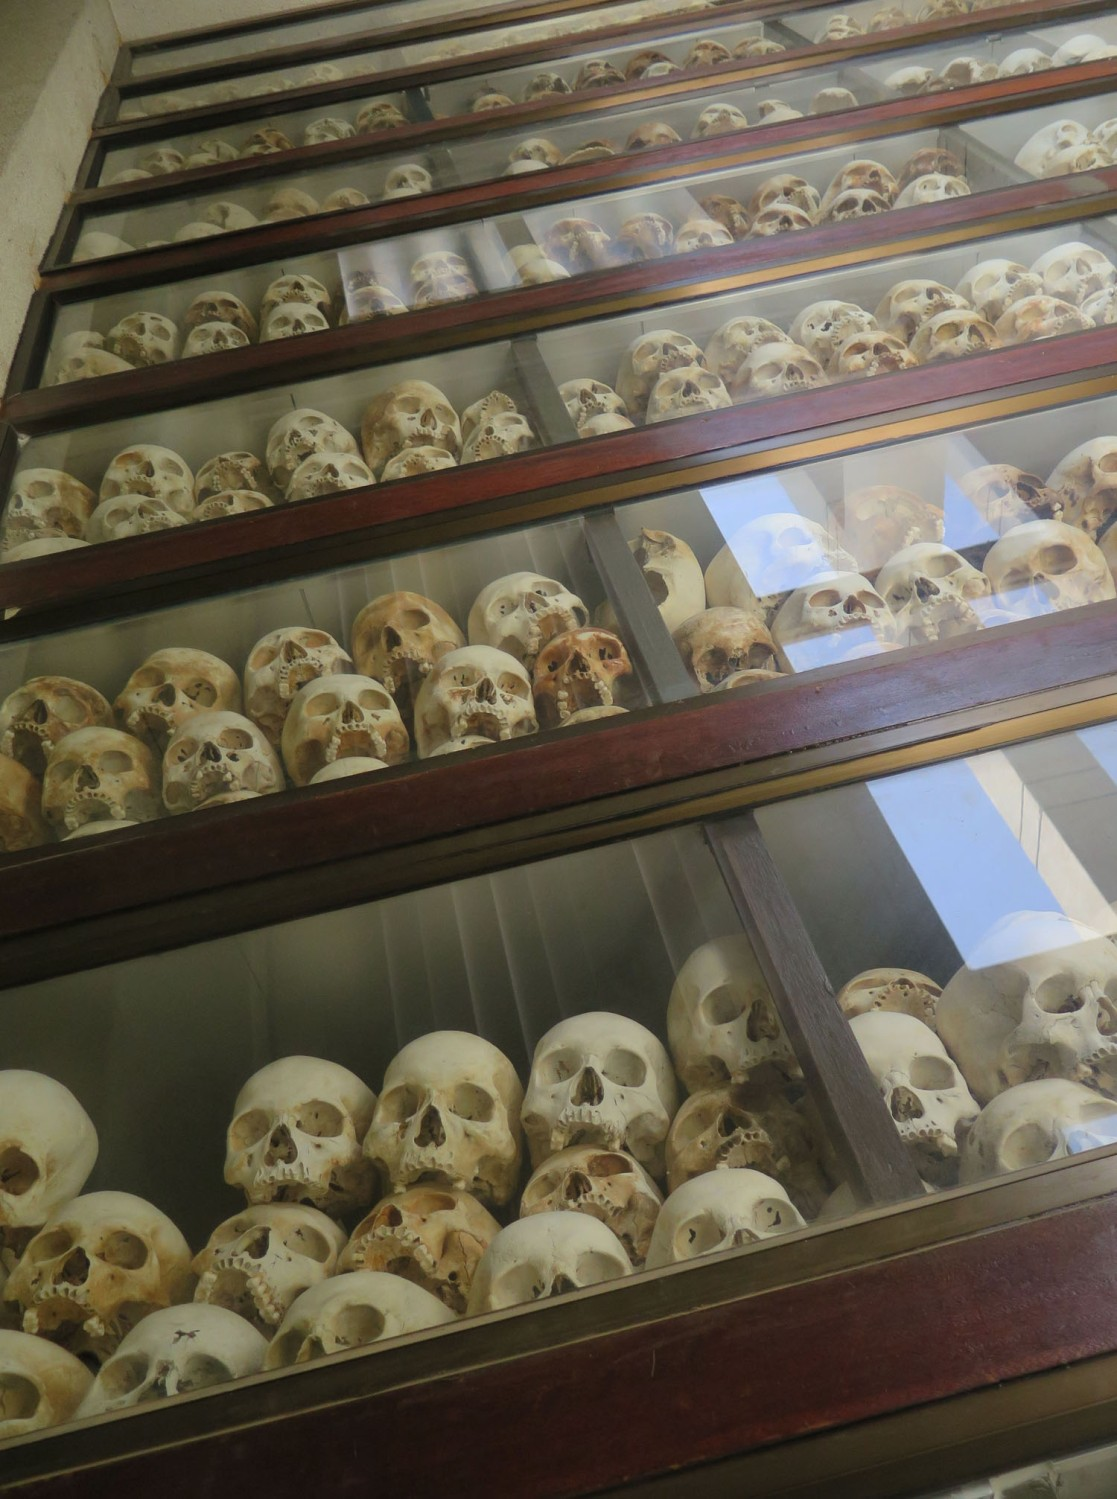 Cambodia-The-Killing-Fields-Choeung-Ek-Memorial